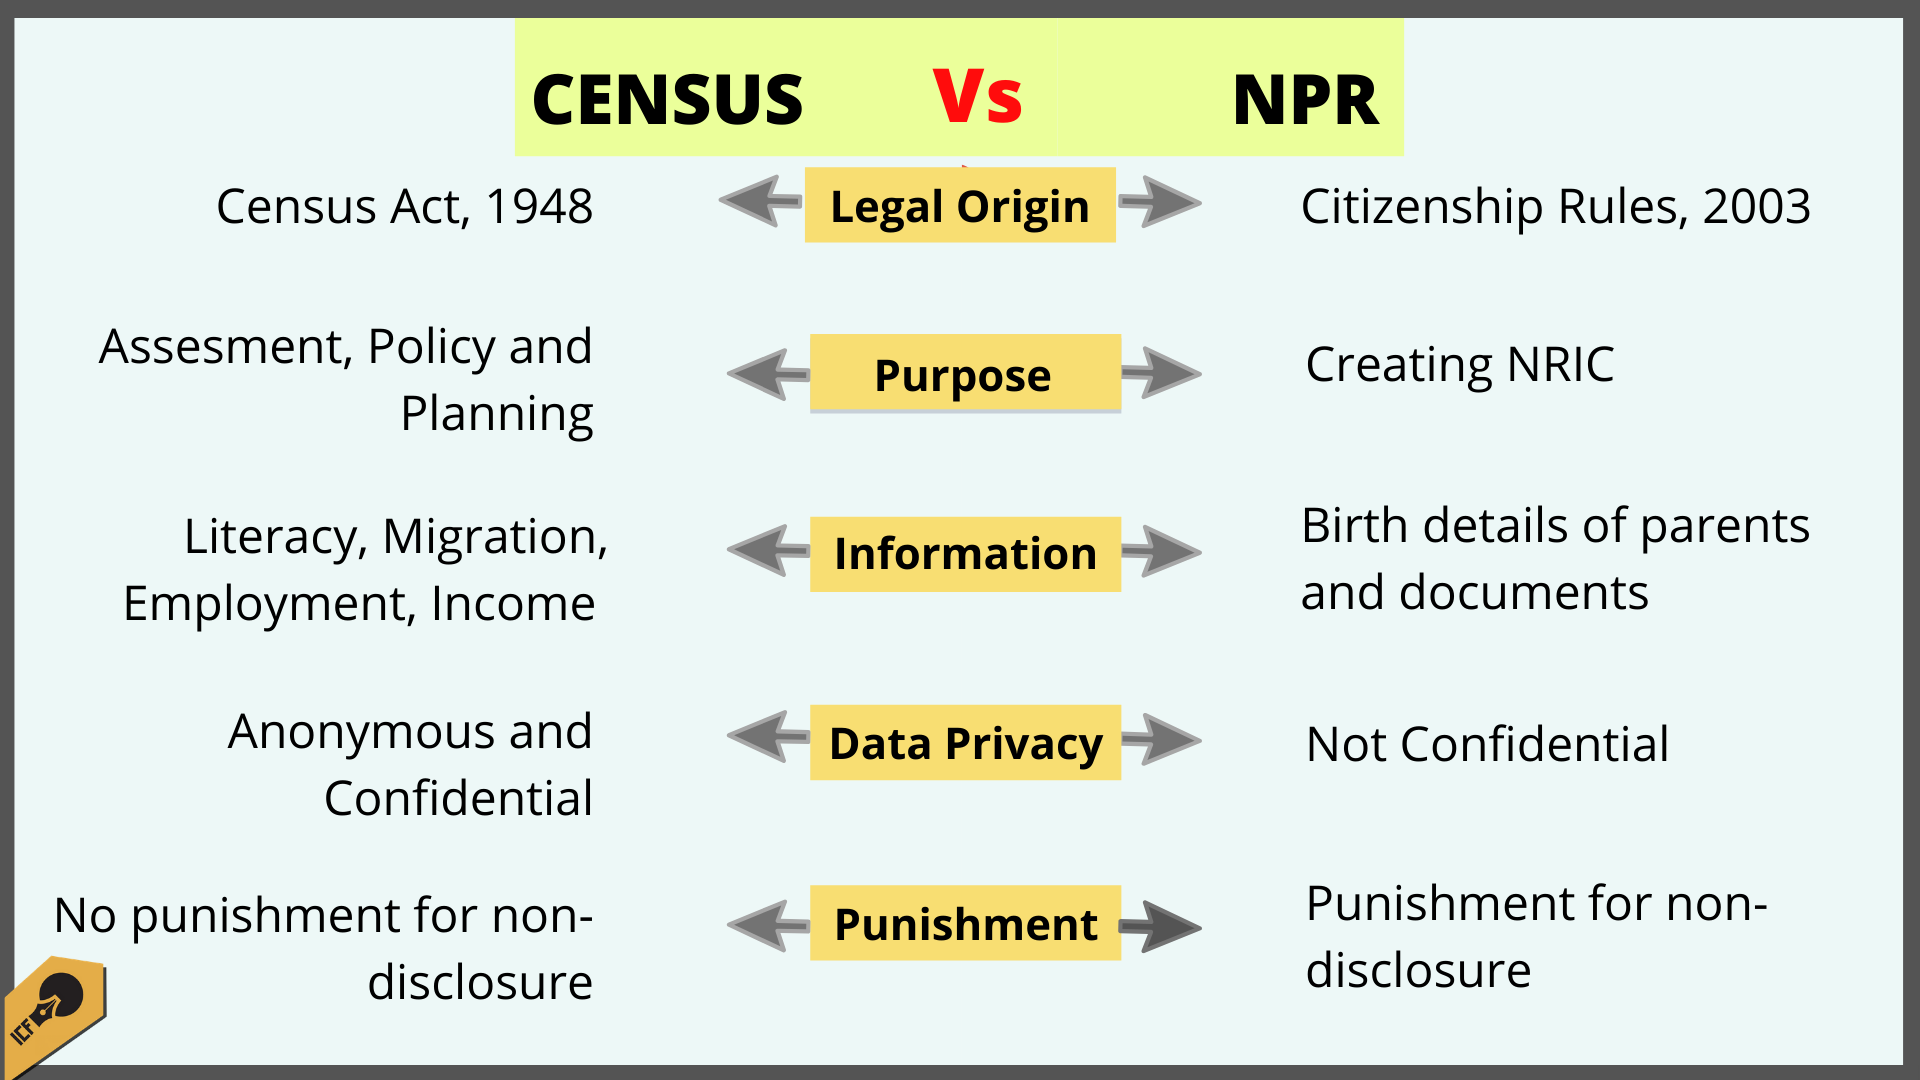 How is NPR different from the Census?